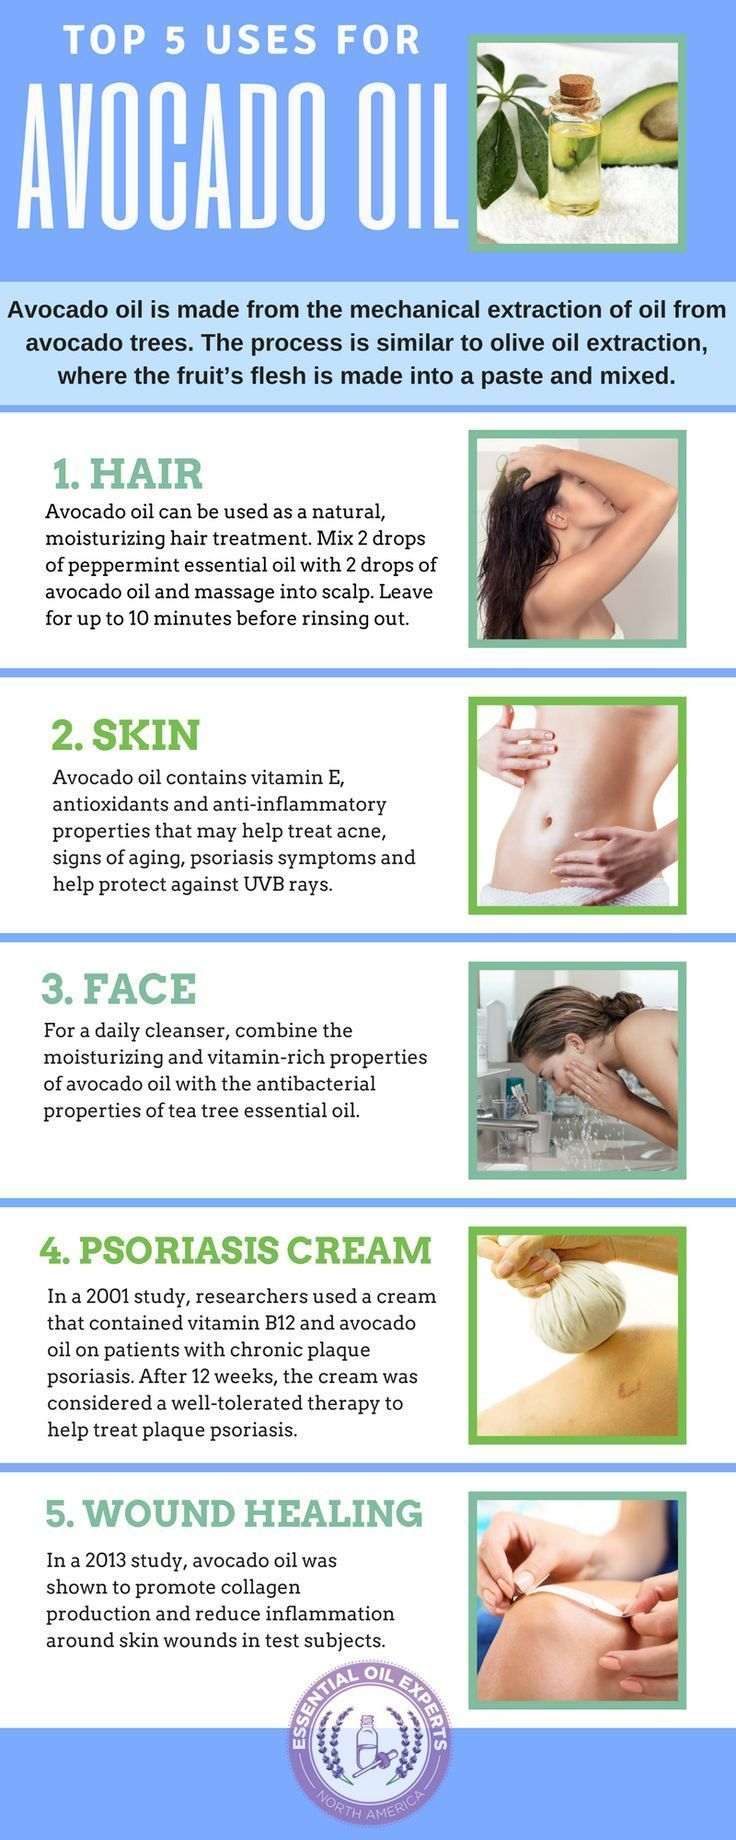 Avocado Oil Benefits For Hair Skin And Face And Where To Buy Avocado Oil Hair Avocado Oil Benefits Avocado Oil Uses